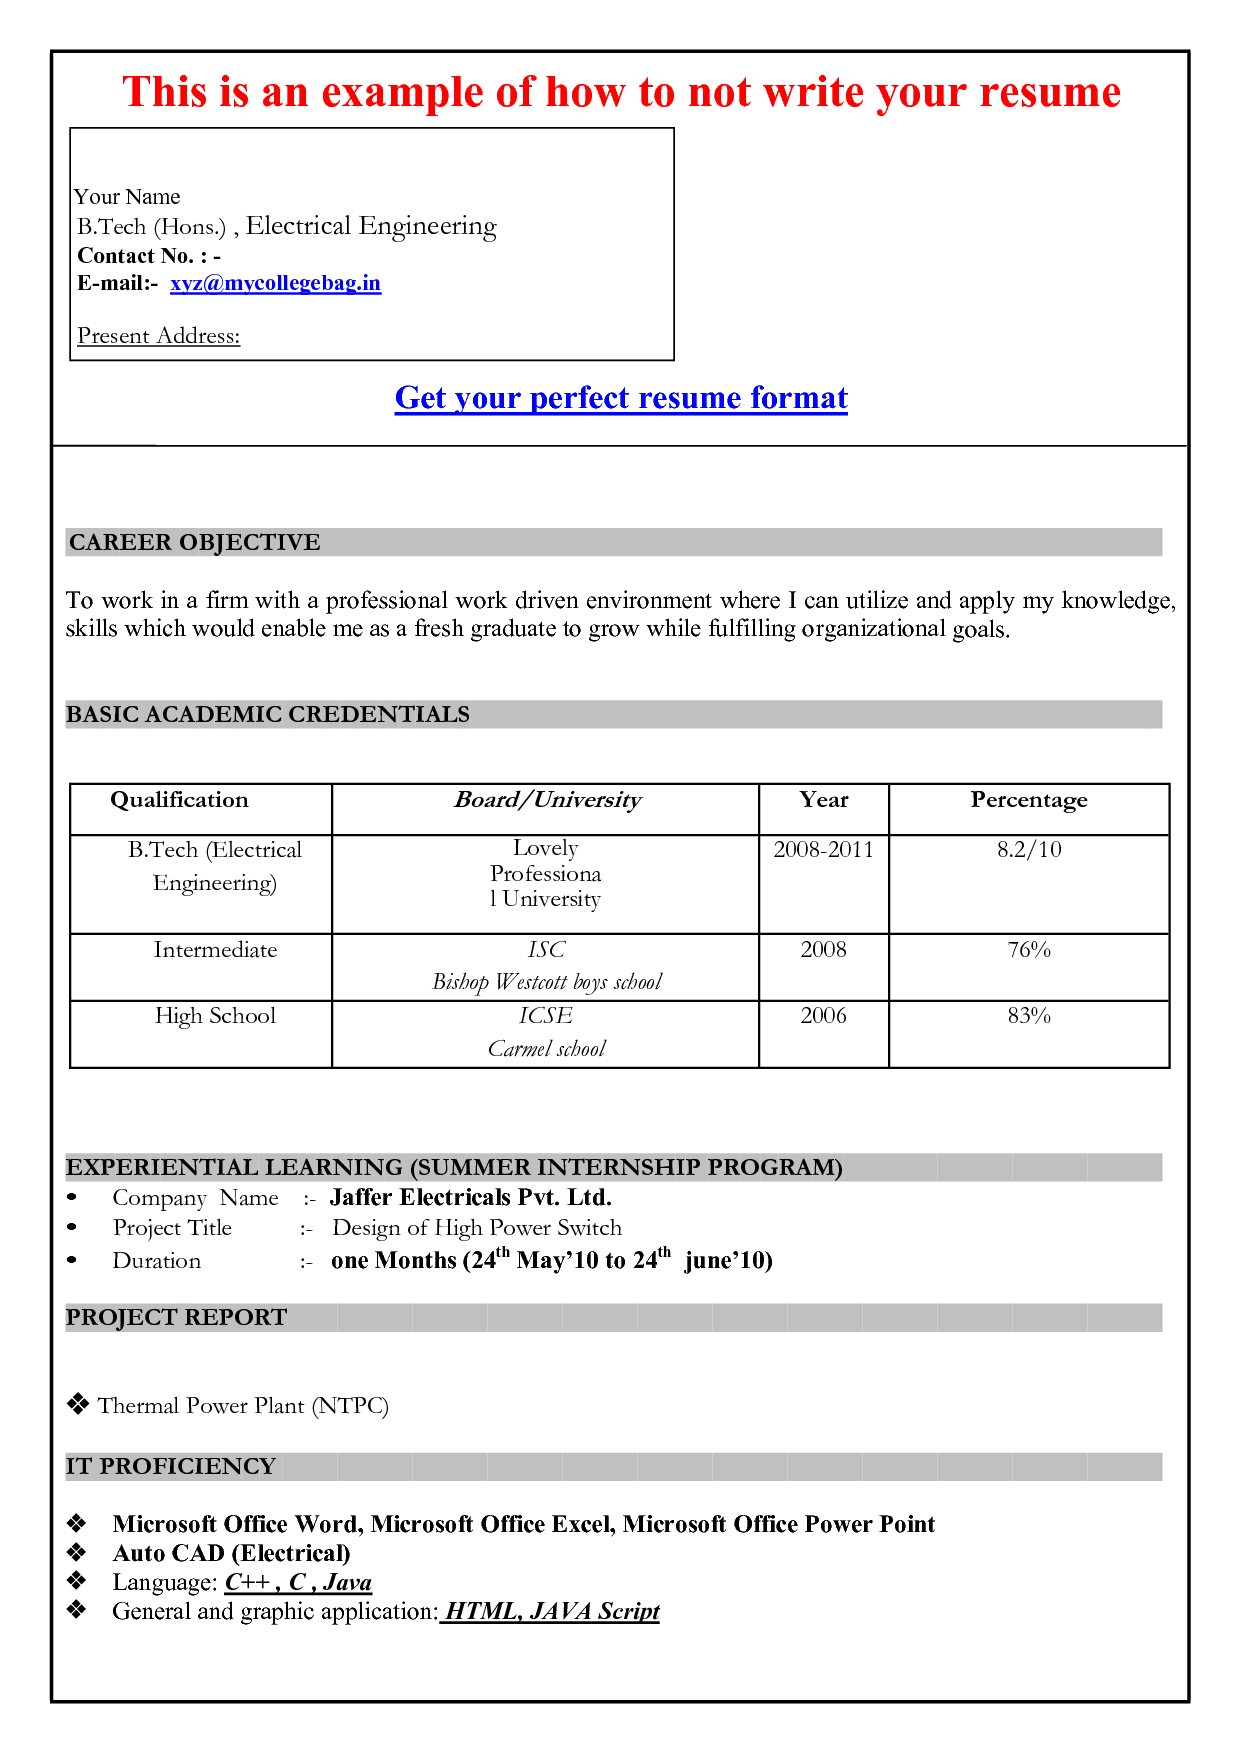 Resume Template In Word 2007 Word Template For Resume Templates And Builder Doc Free Document